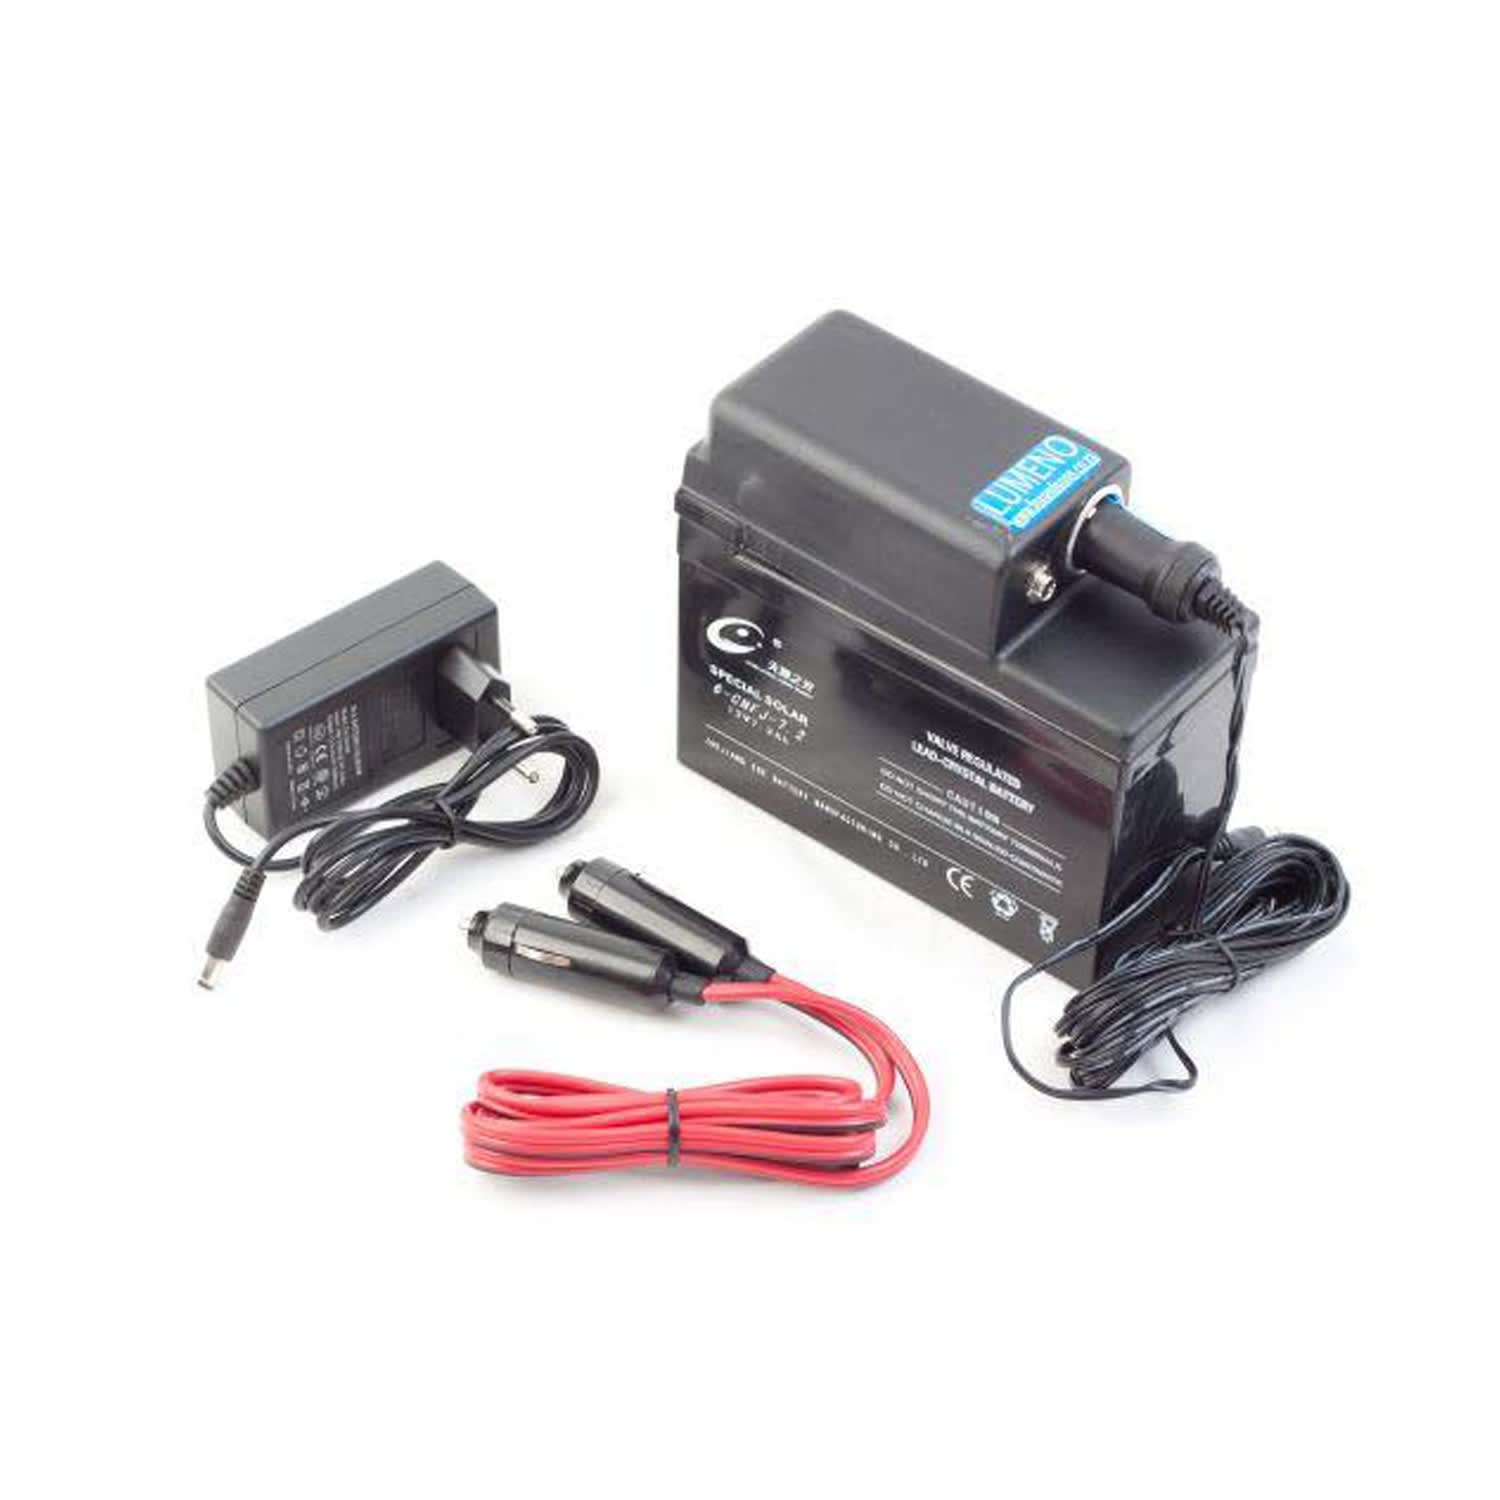 Lumeno Battery Buddy 12 & 220V Charger